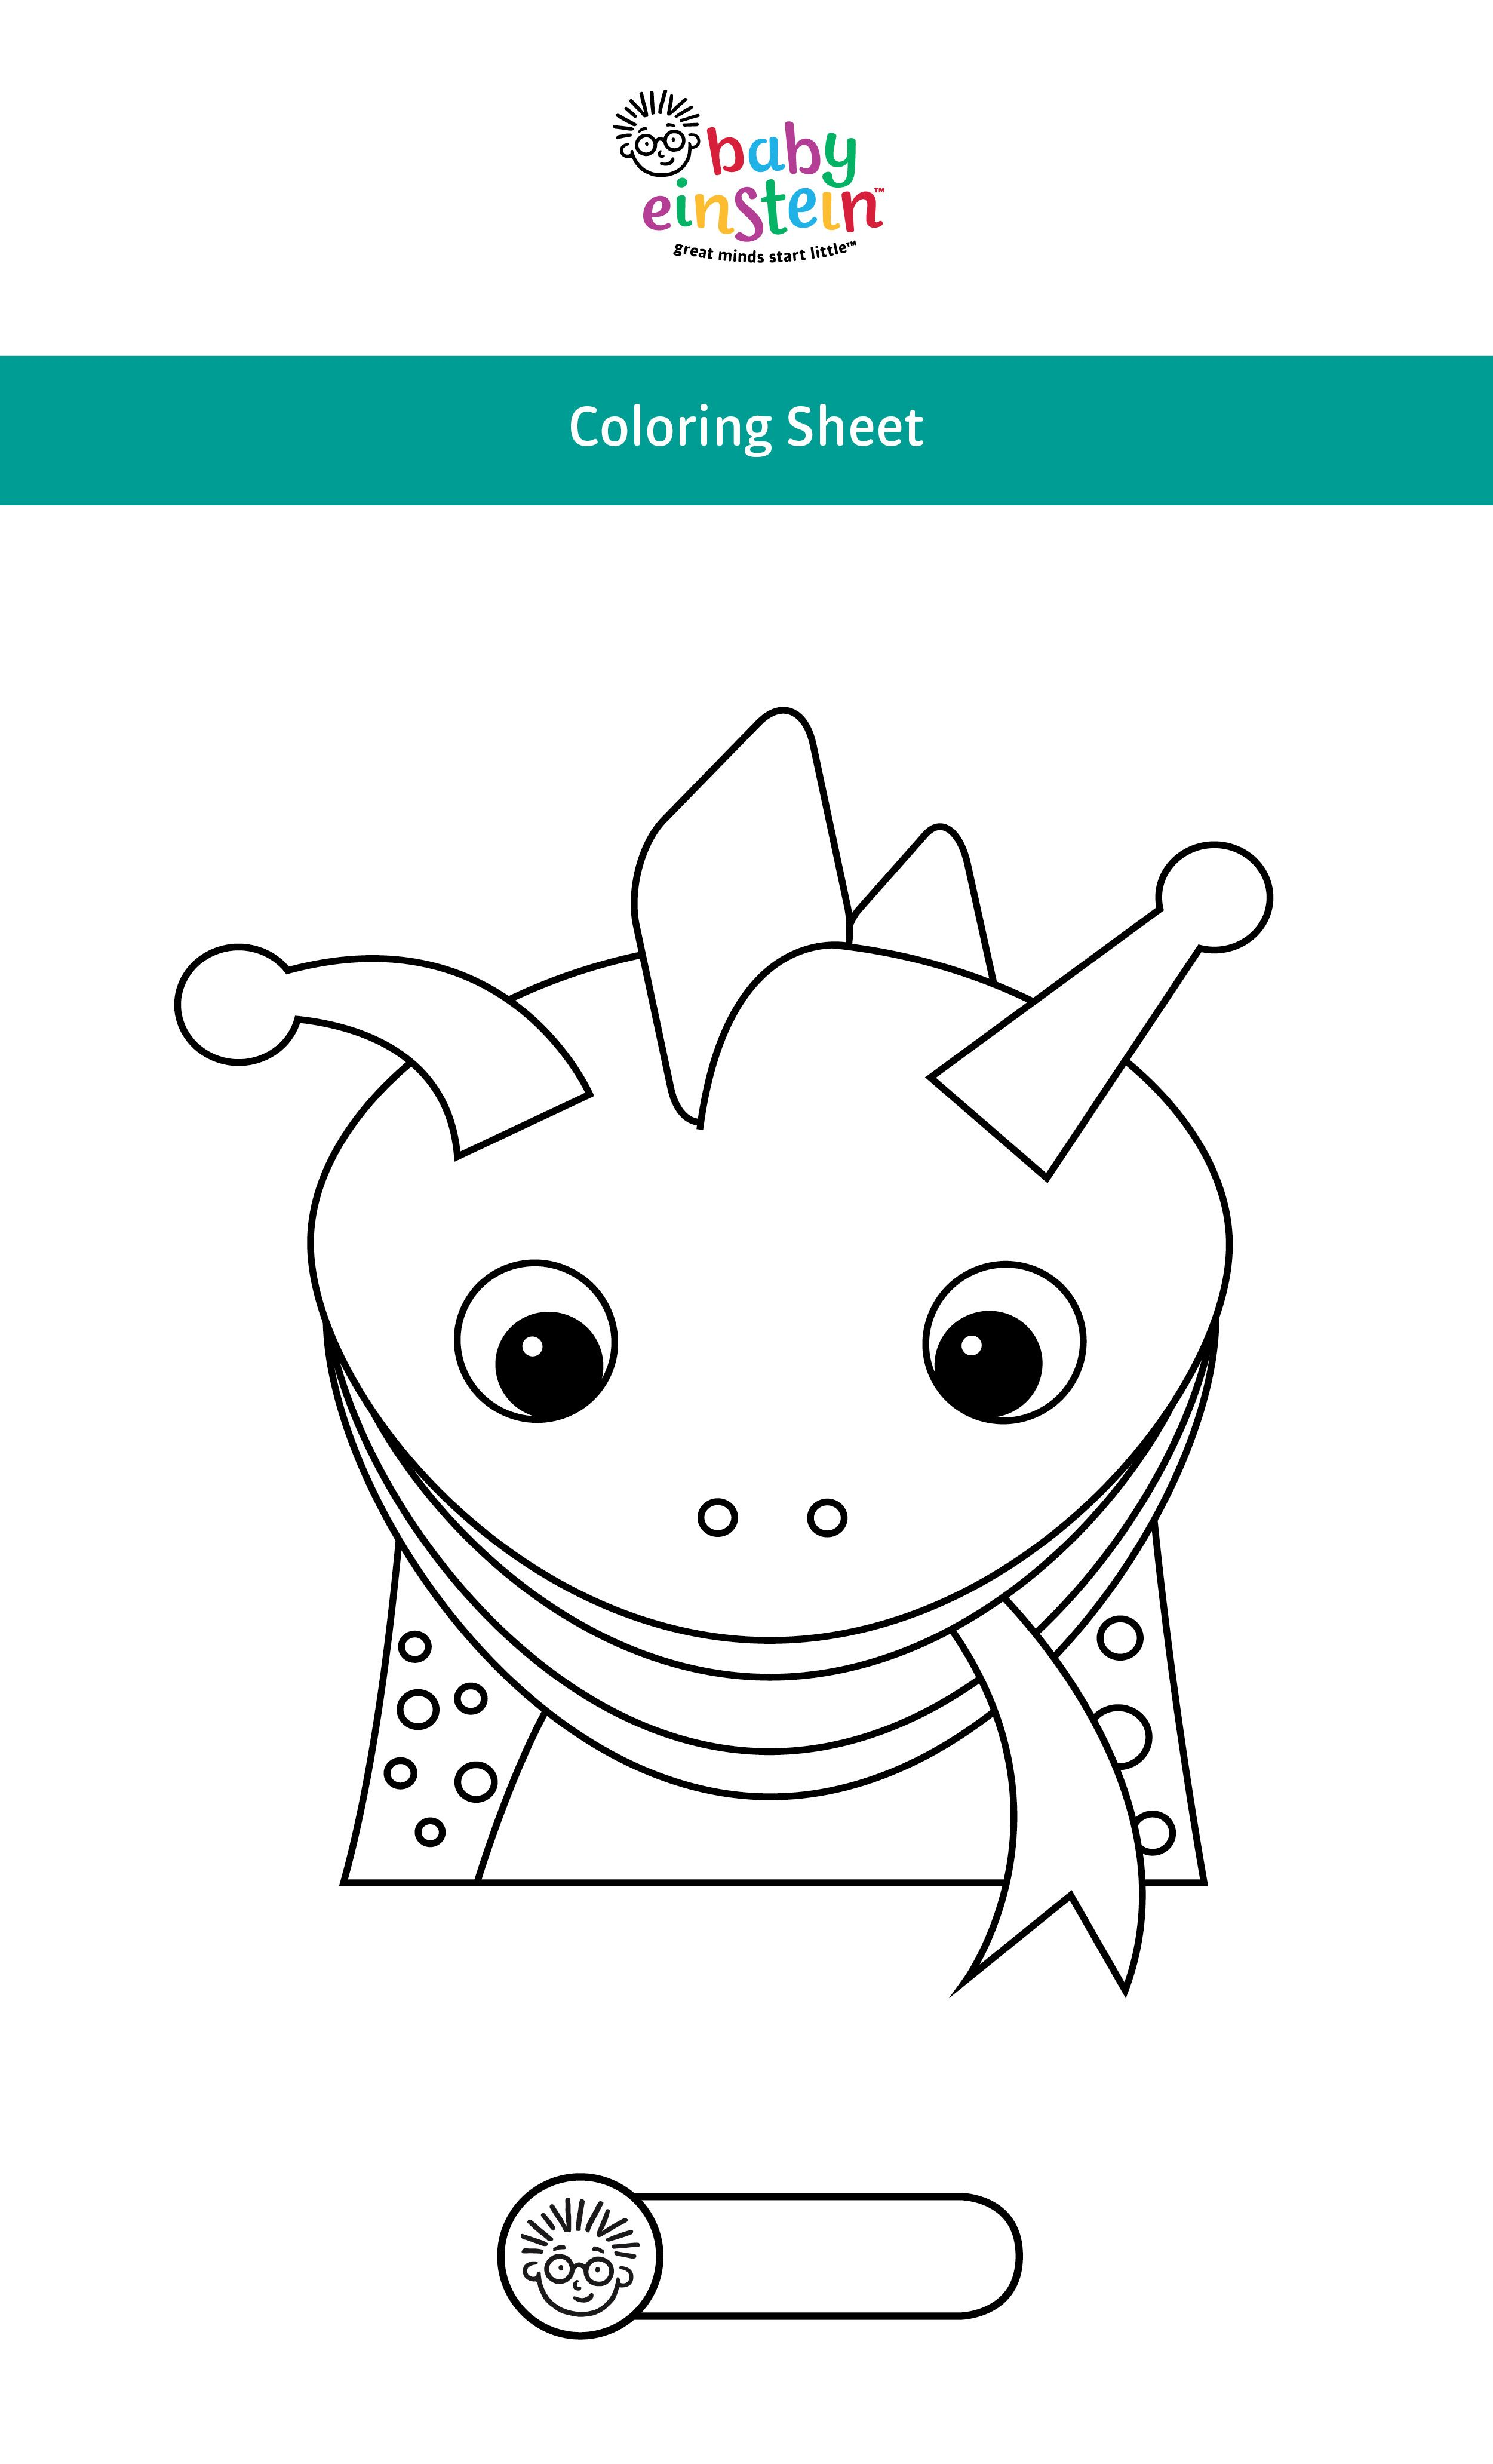 Adorable Baby Einstein Coloring Pages For Your Little One S Birthday Party Get Printables Now